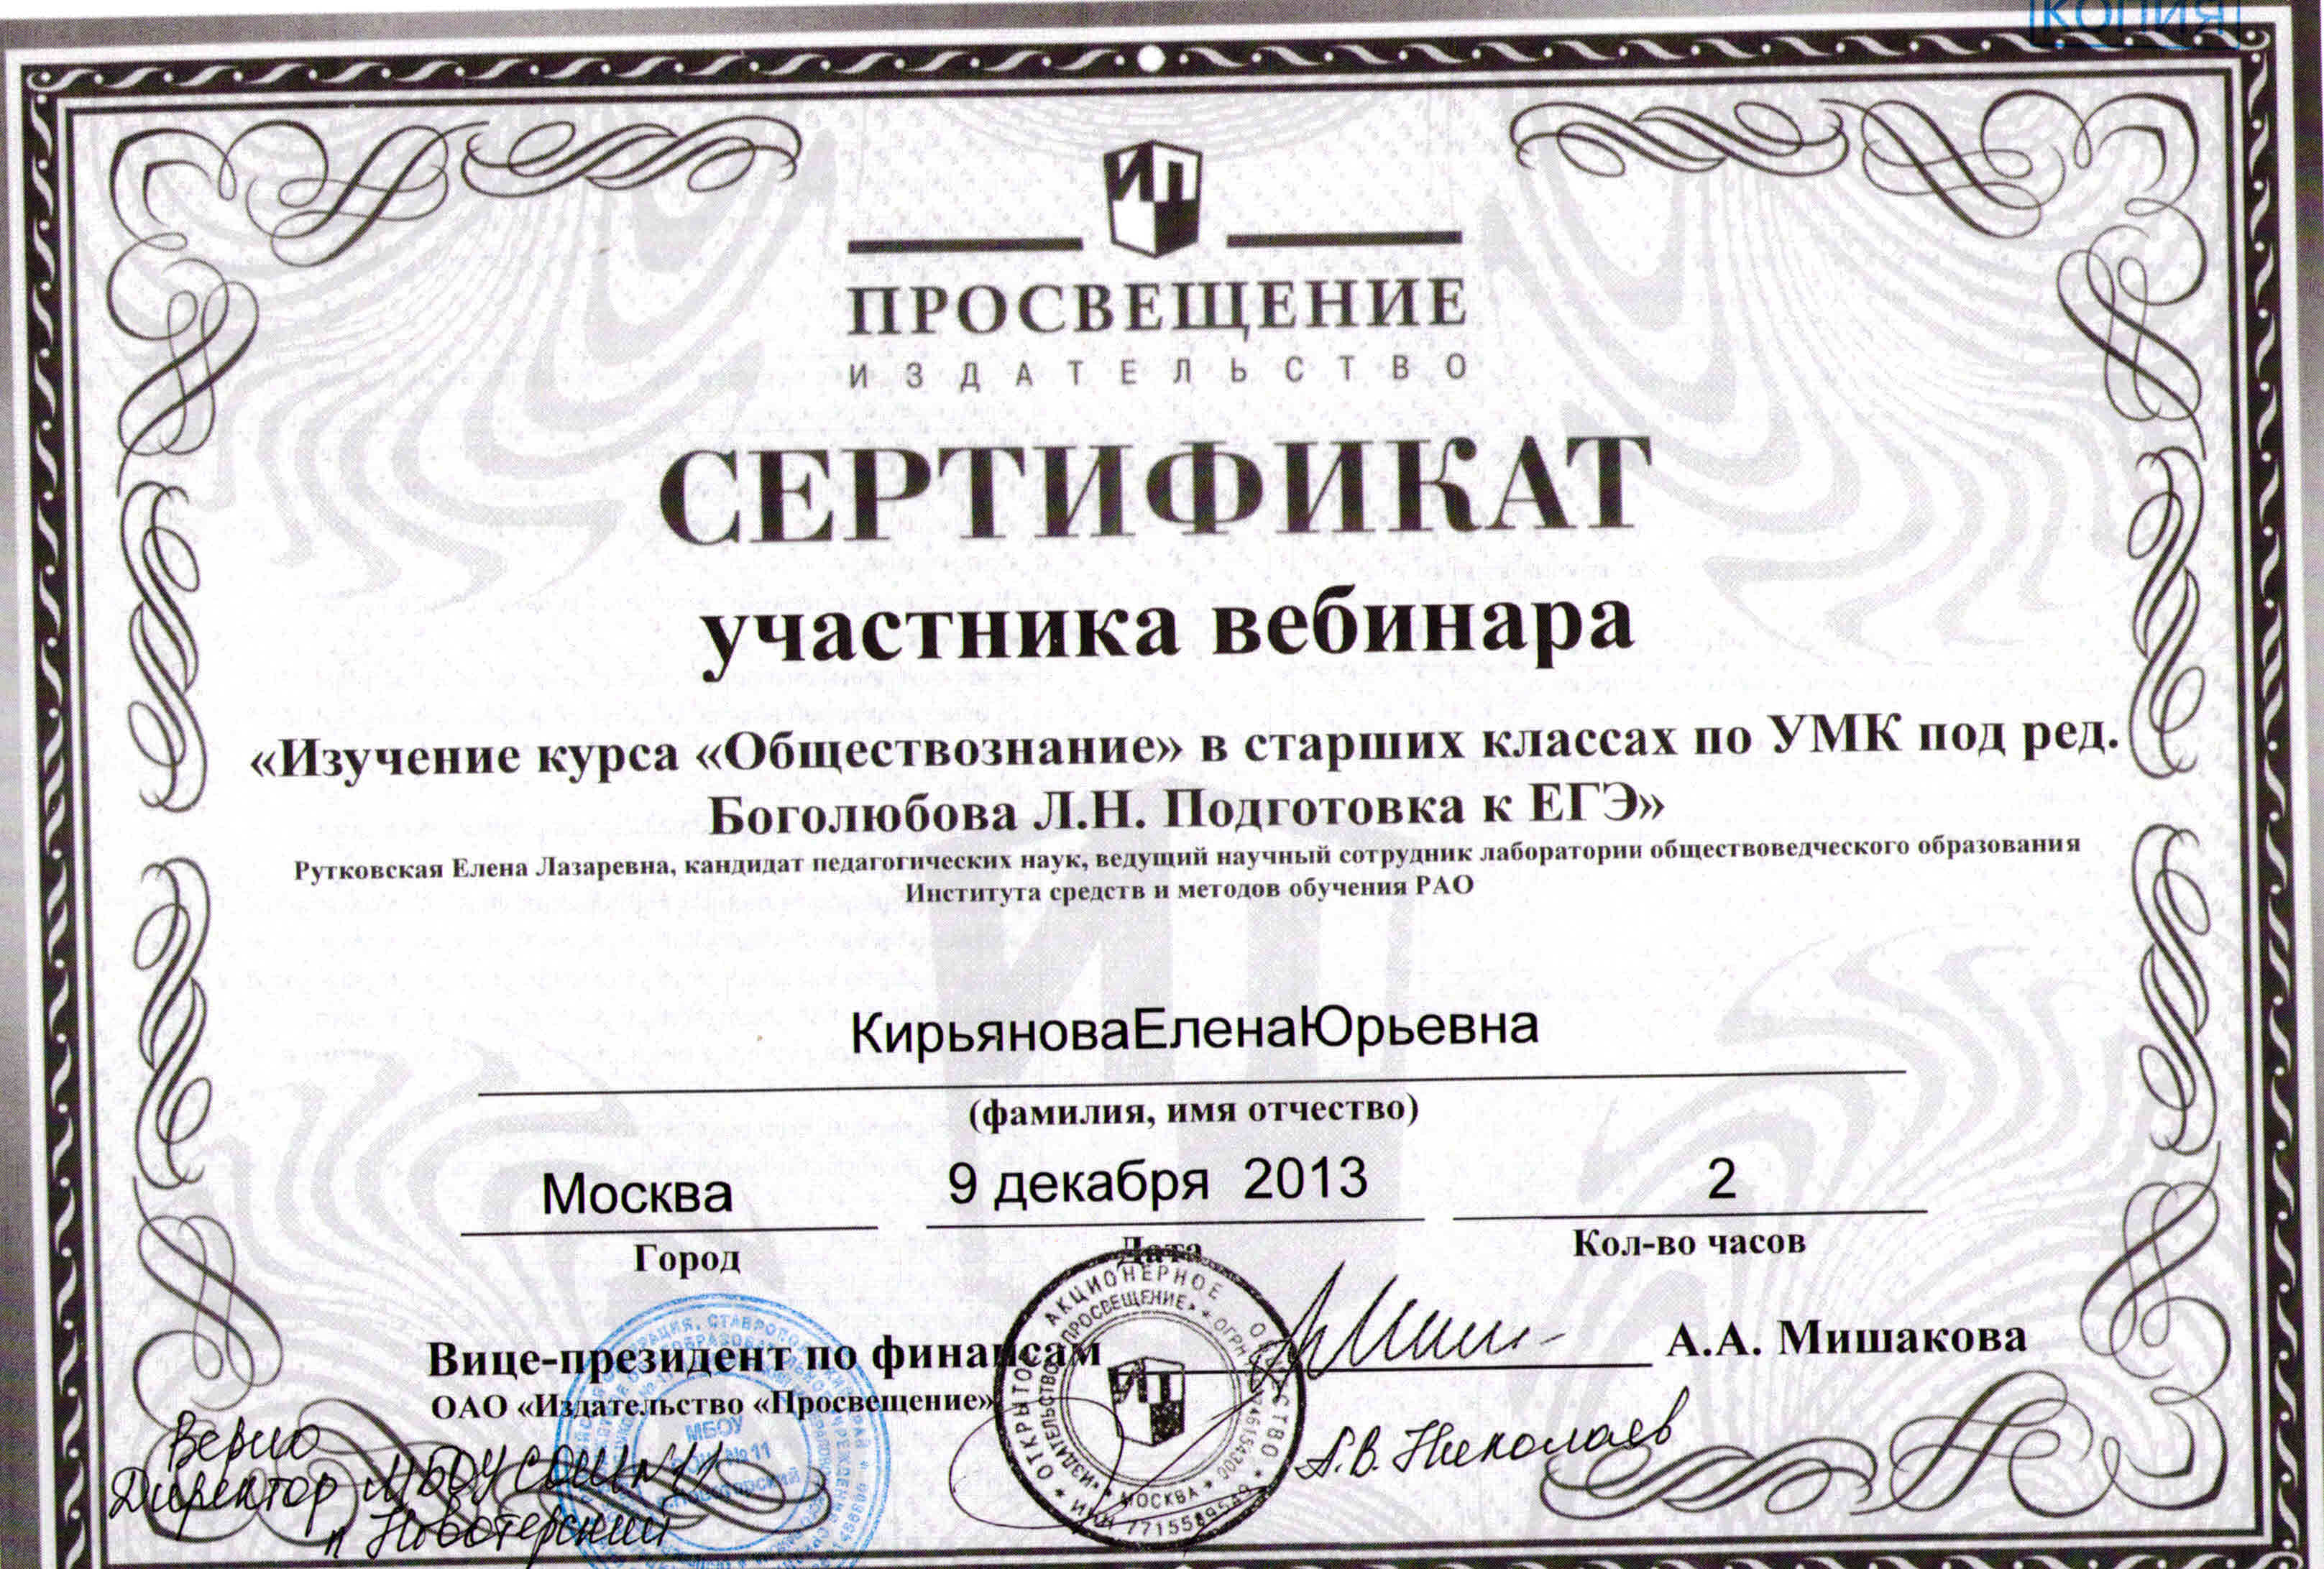 C:\Users\Сергей\Desktop\Document_40.jpg